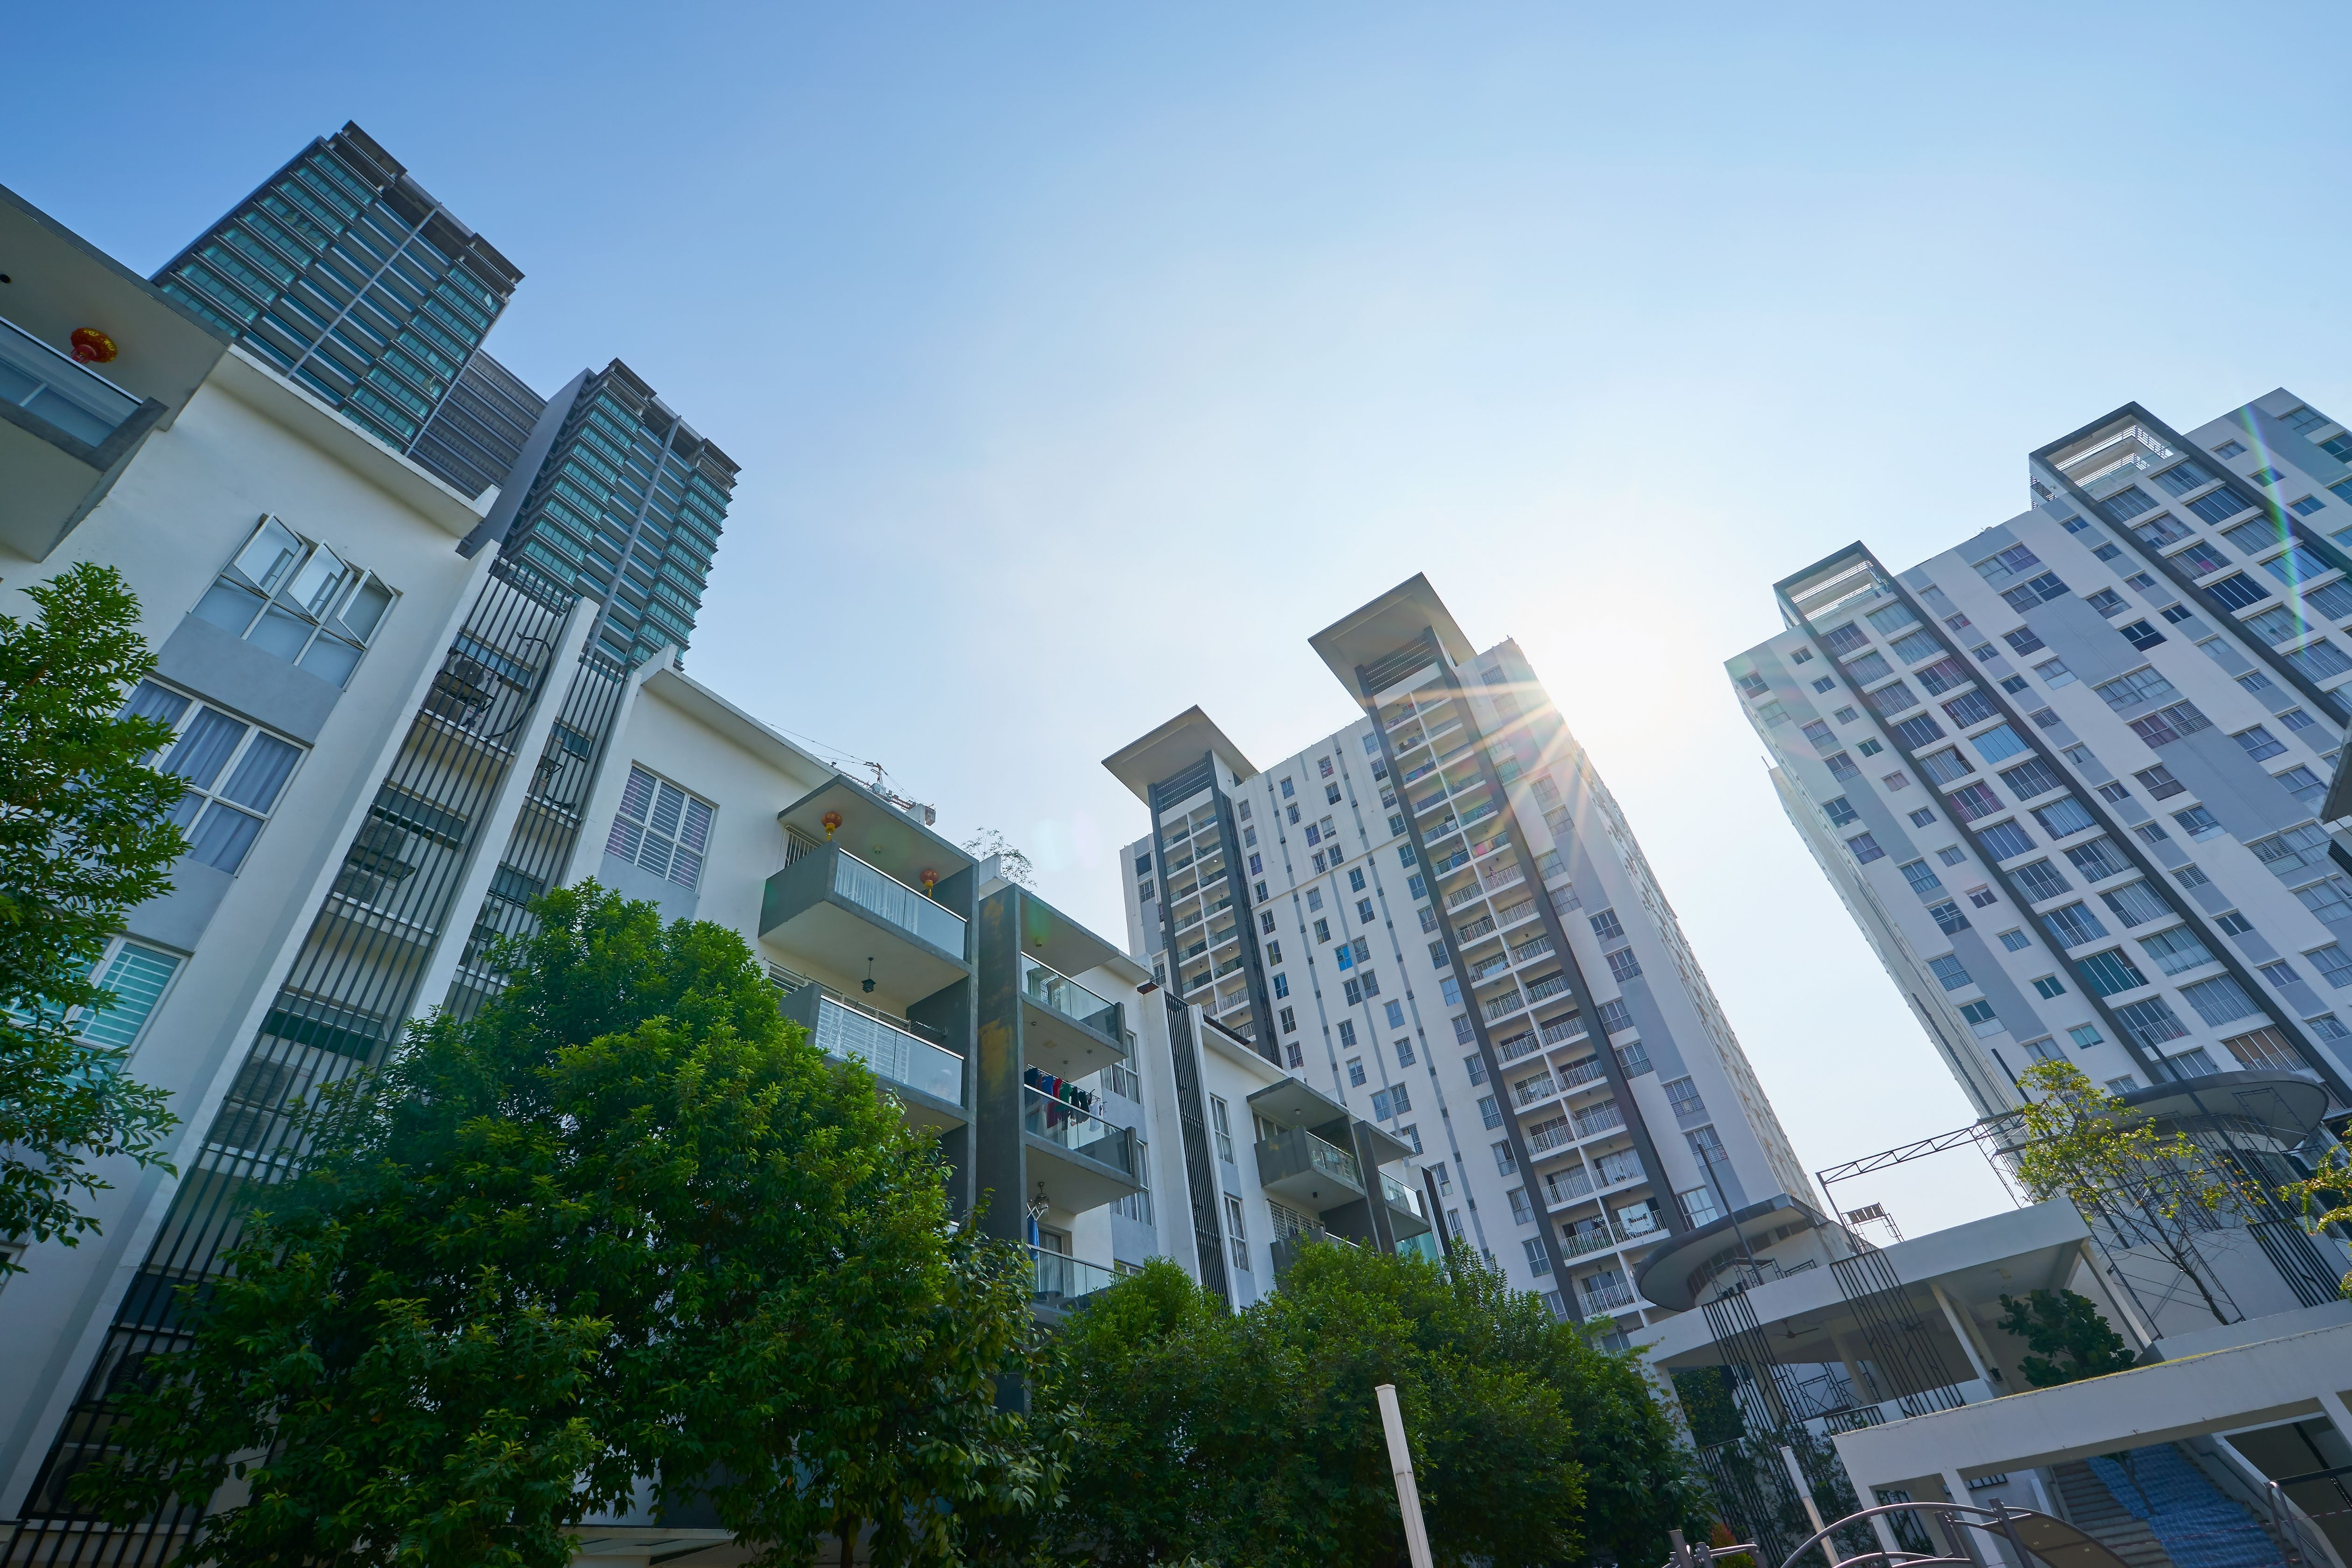 What could curb the rising property market prices?